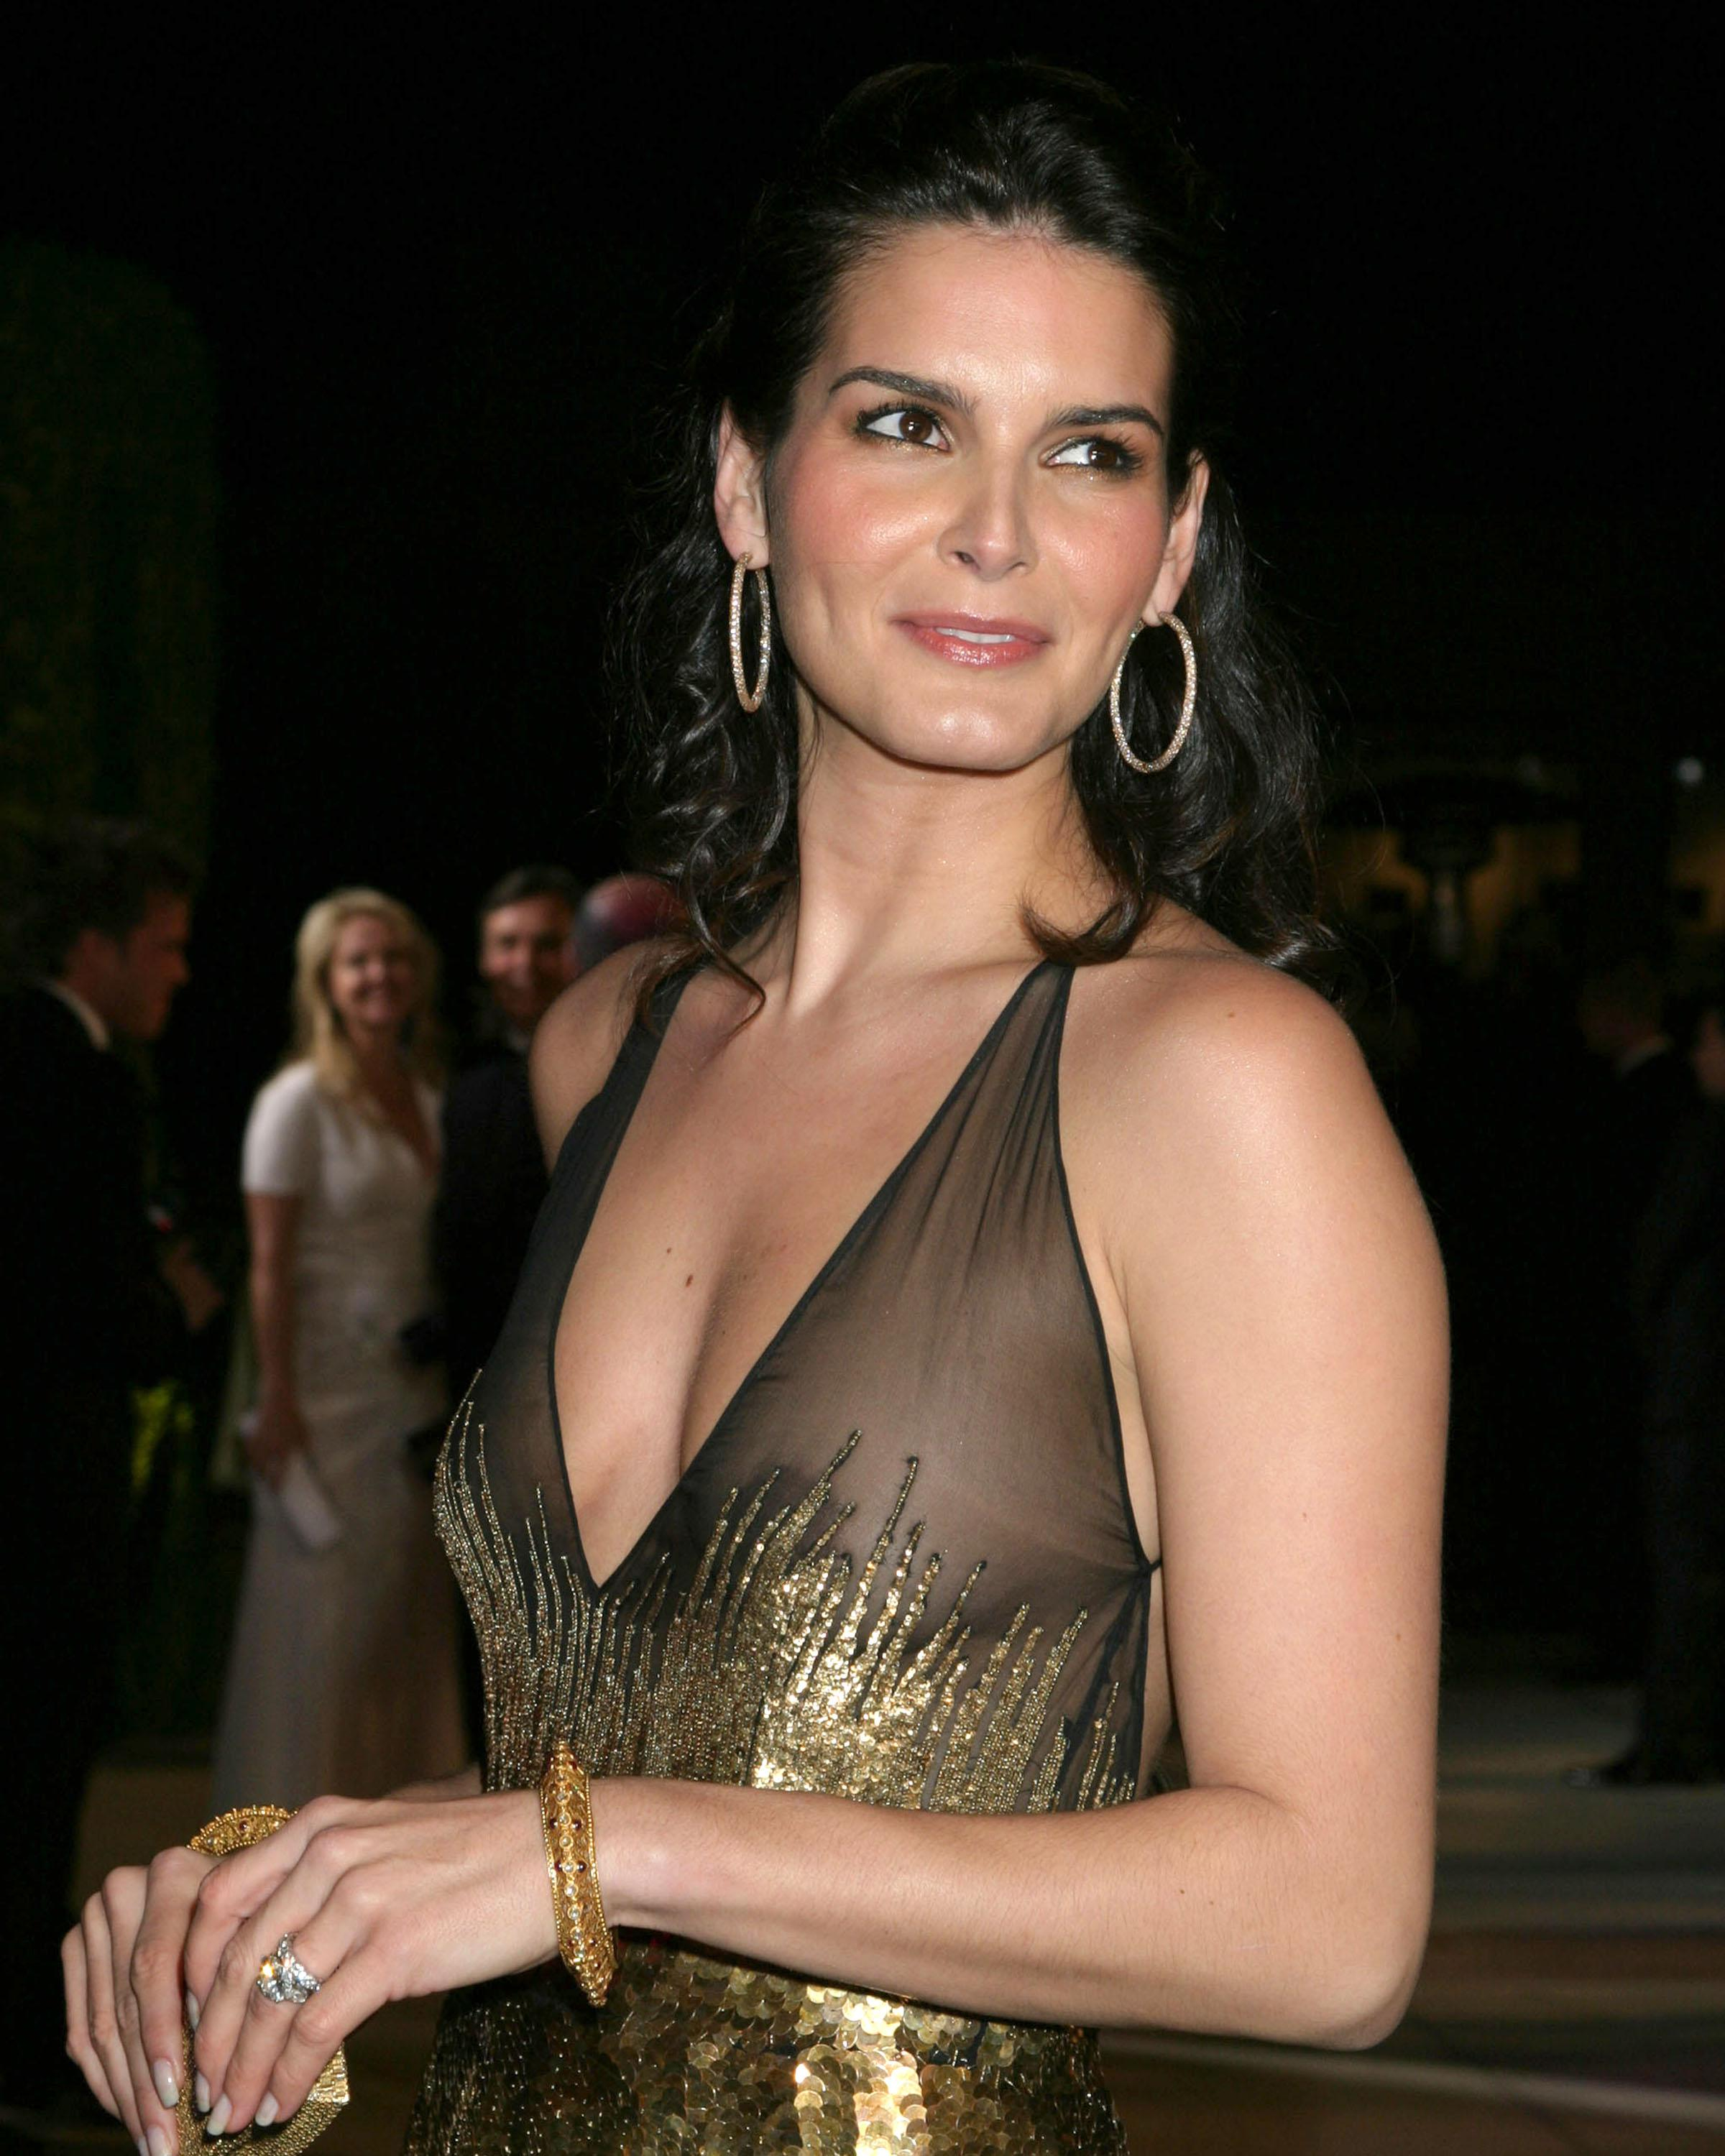 Angie harmon nude covered rizzoli and isles - 2 part 1